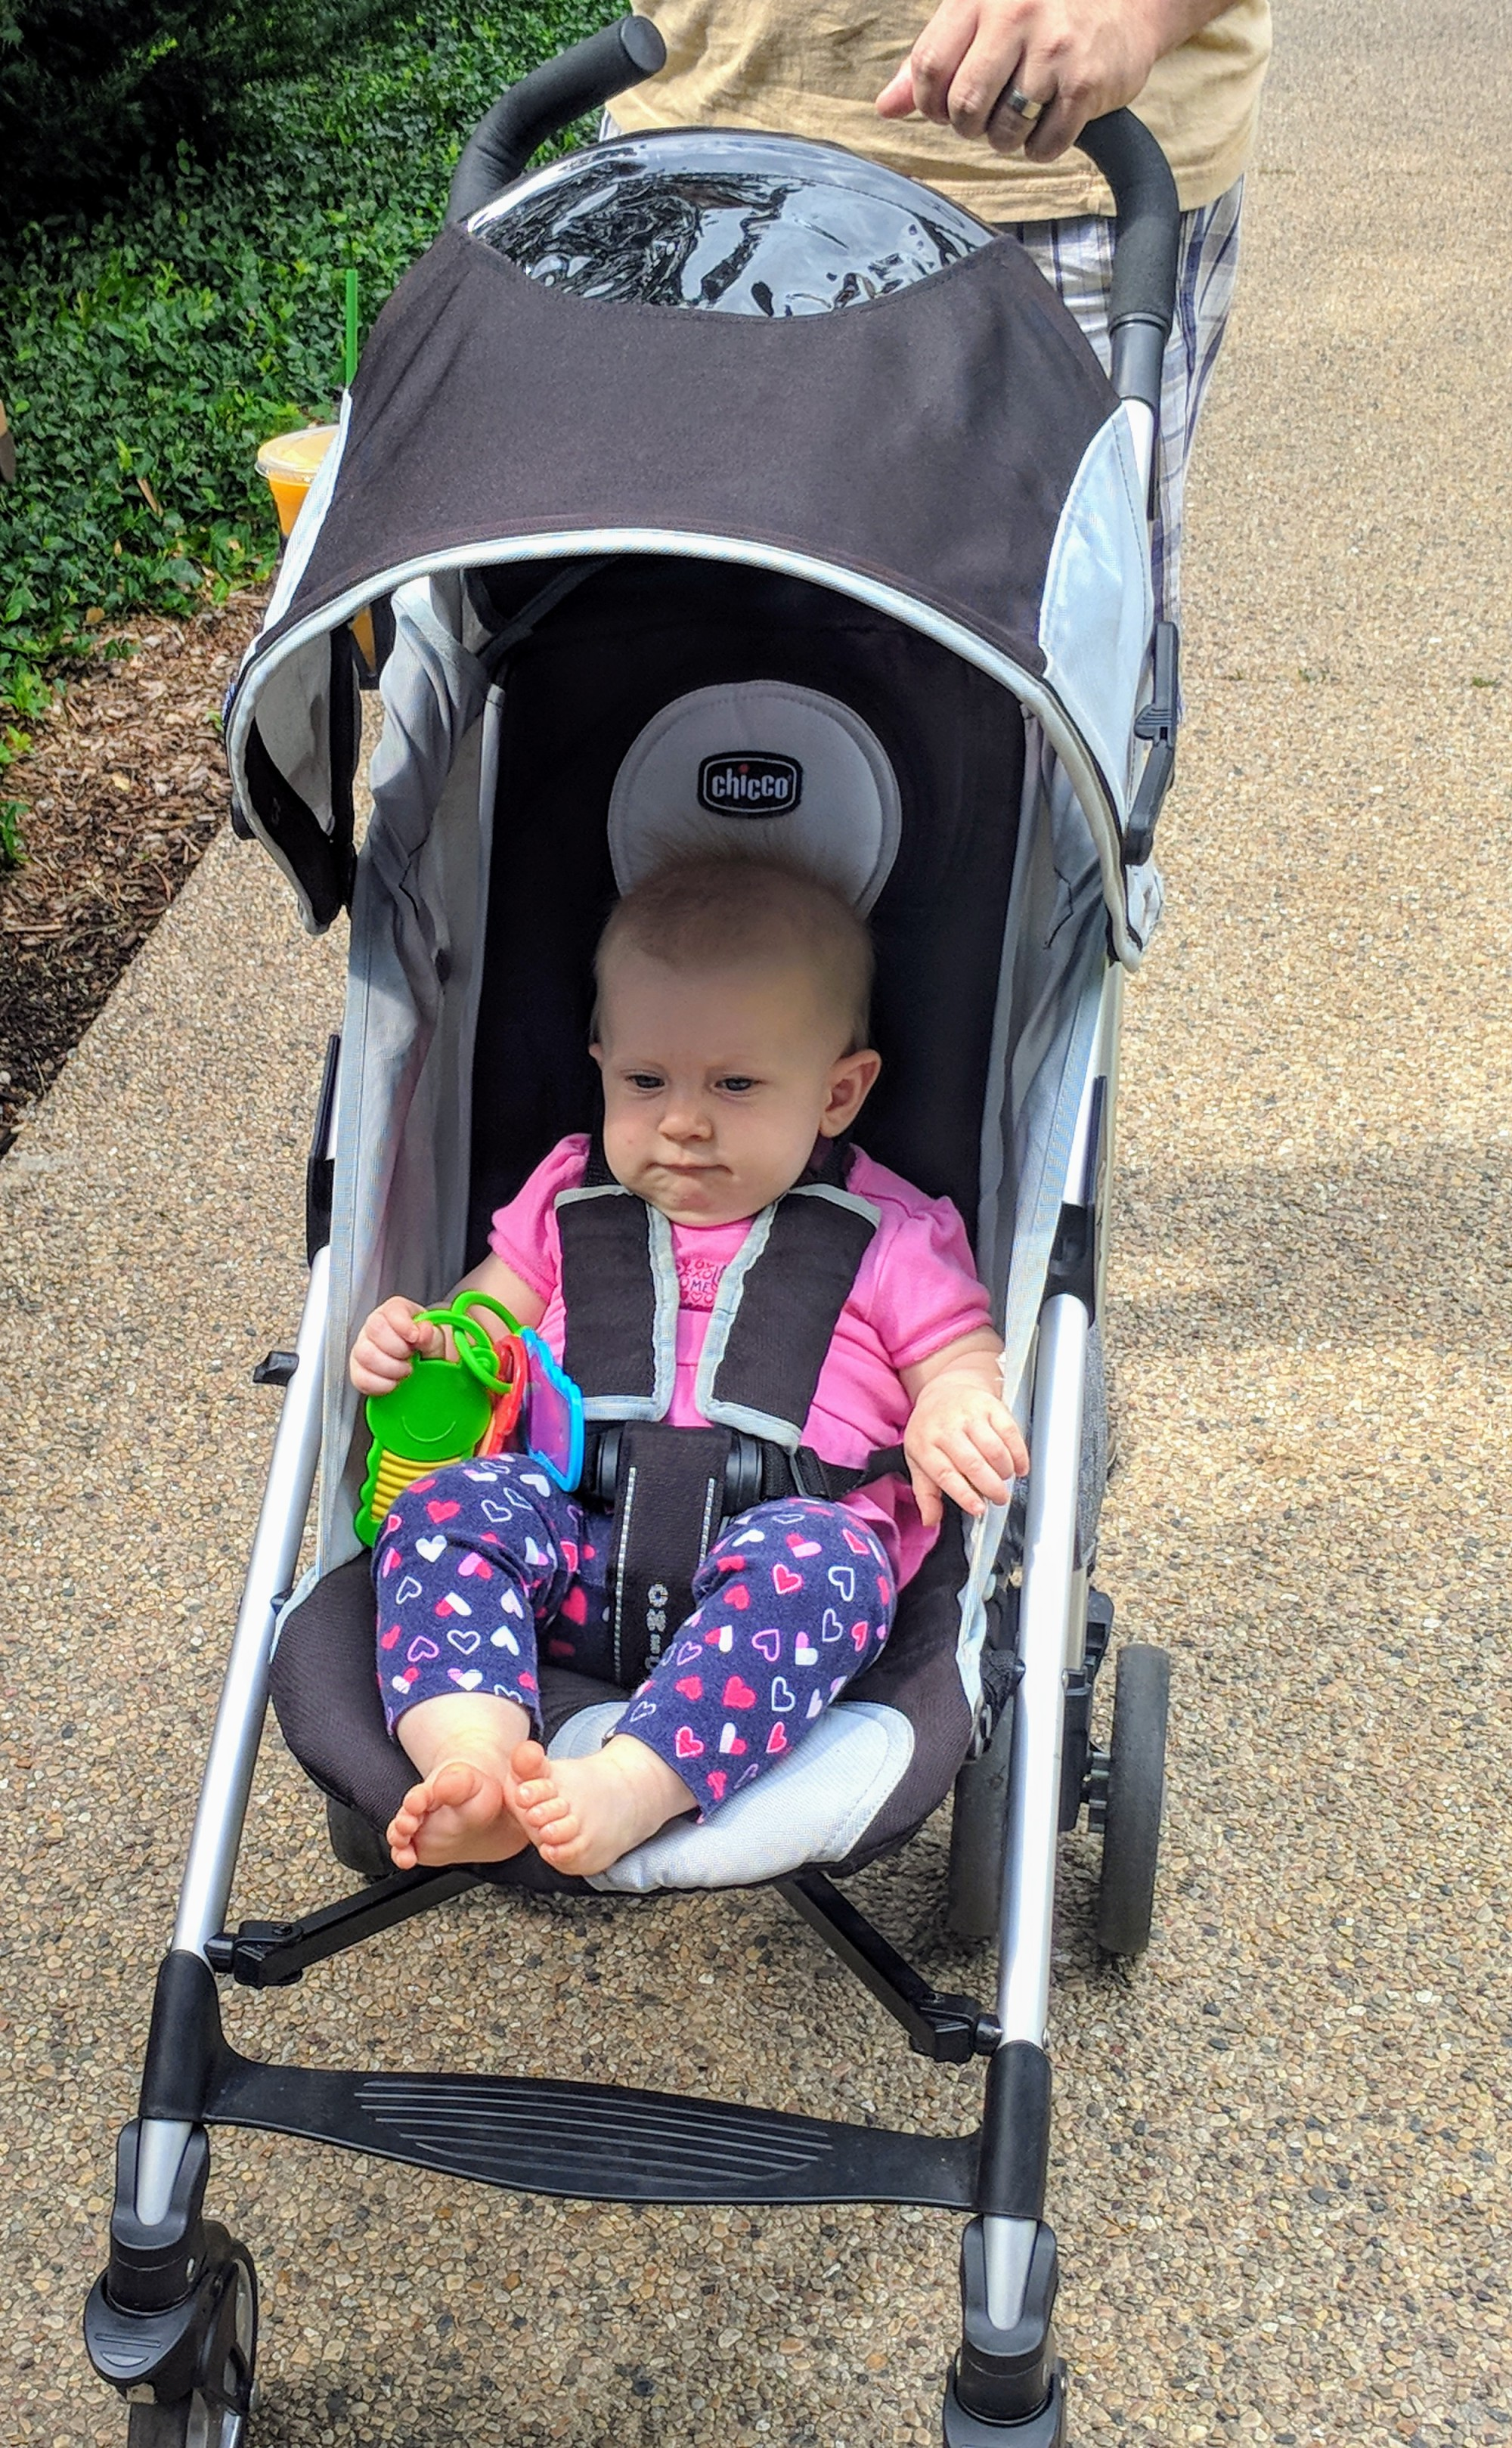 Baby in a lightweight Chicco baby stroller